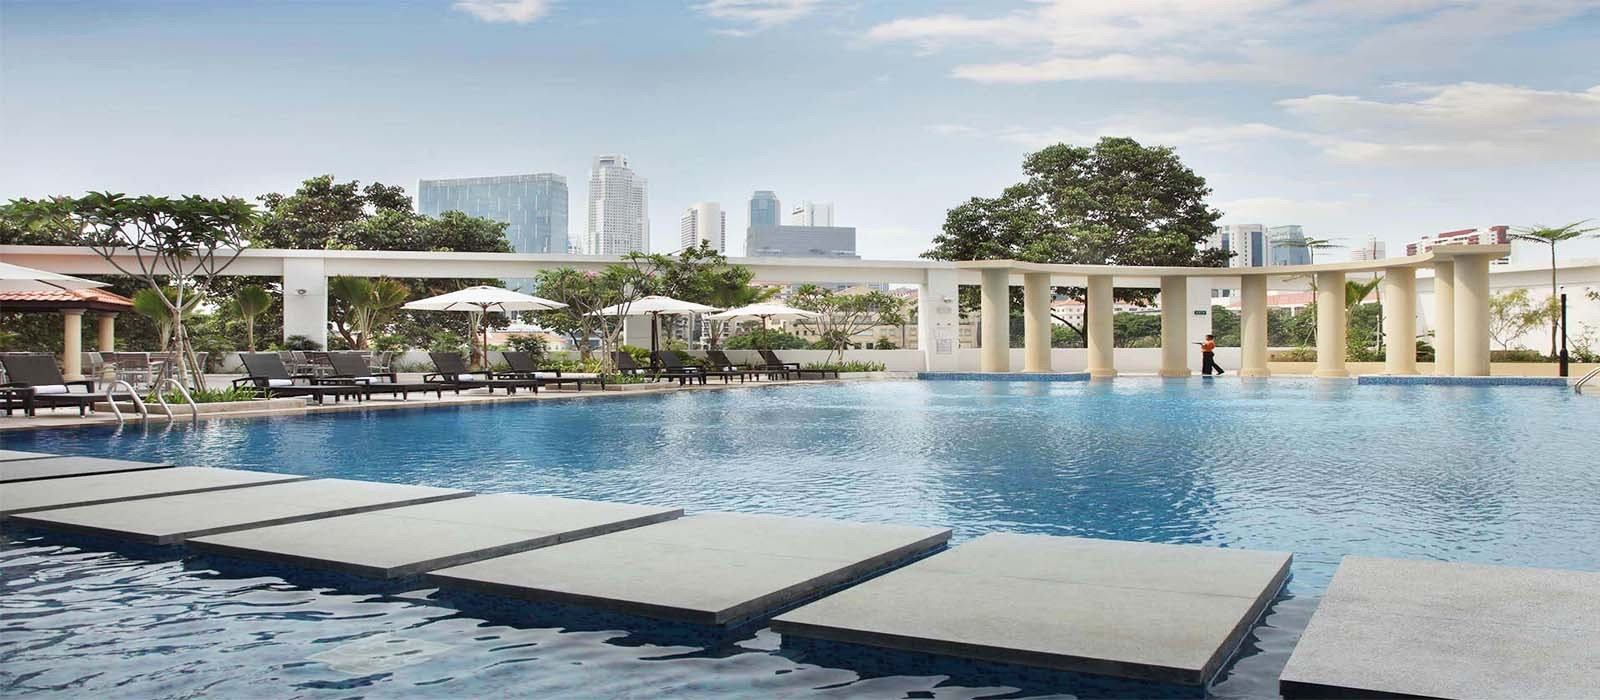 Park Hotel Clarke Quay - Luxury Singapore Holiday packages - Header